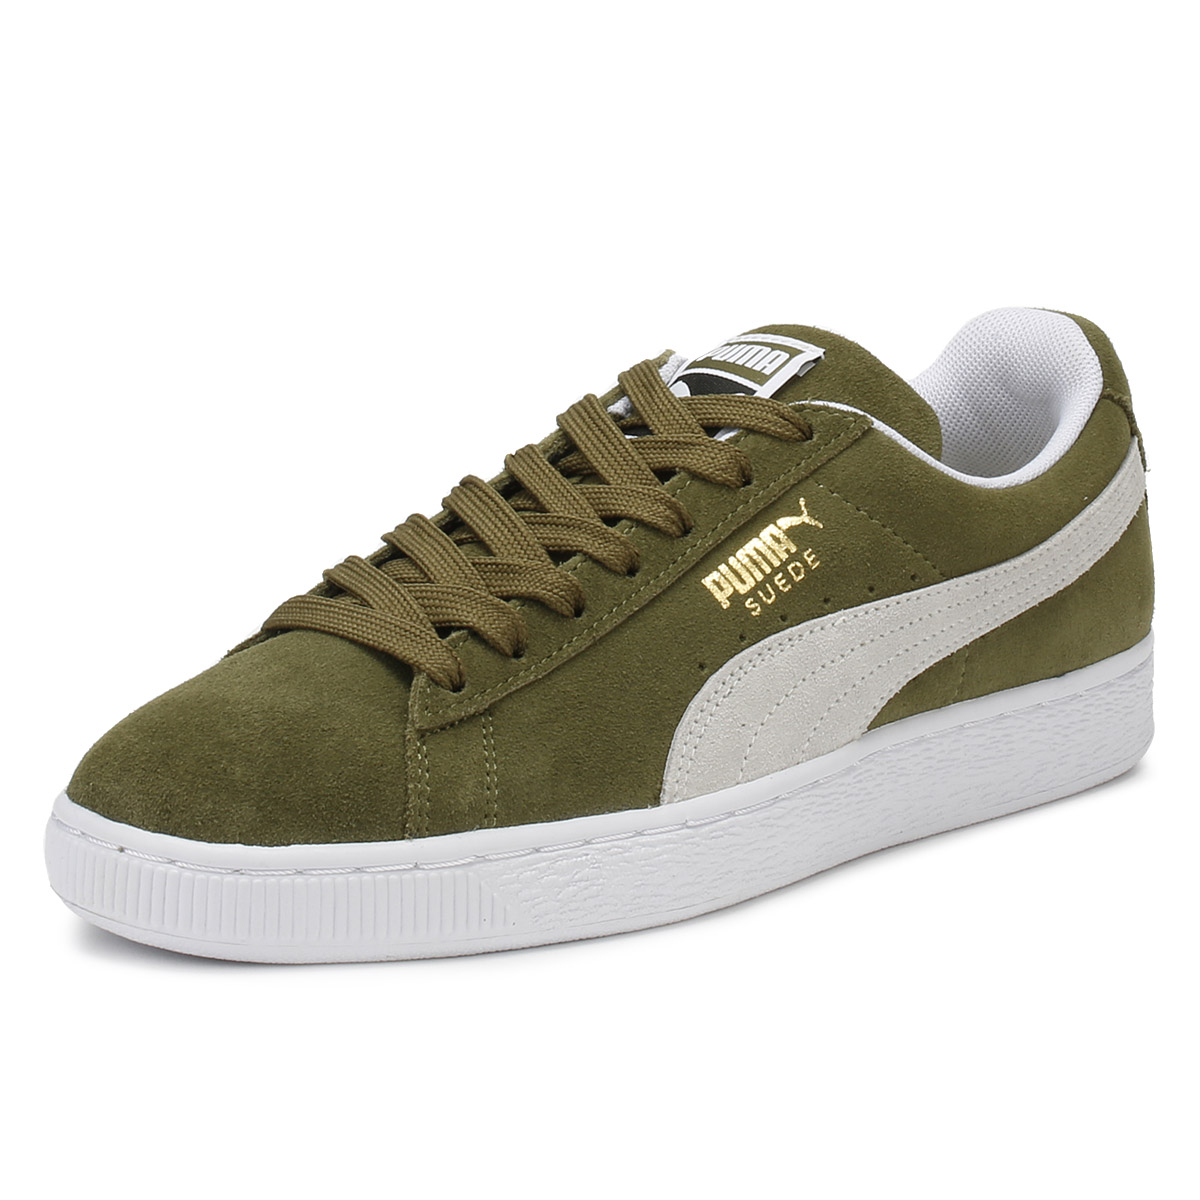 4b8017fb856c Details about PUMA Mens Classic Trainers Olive Green Suede Lace Up Sport  Casual Shoes